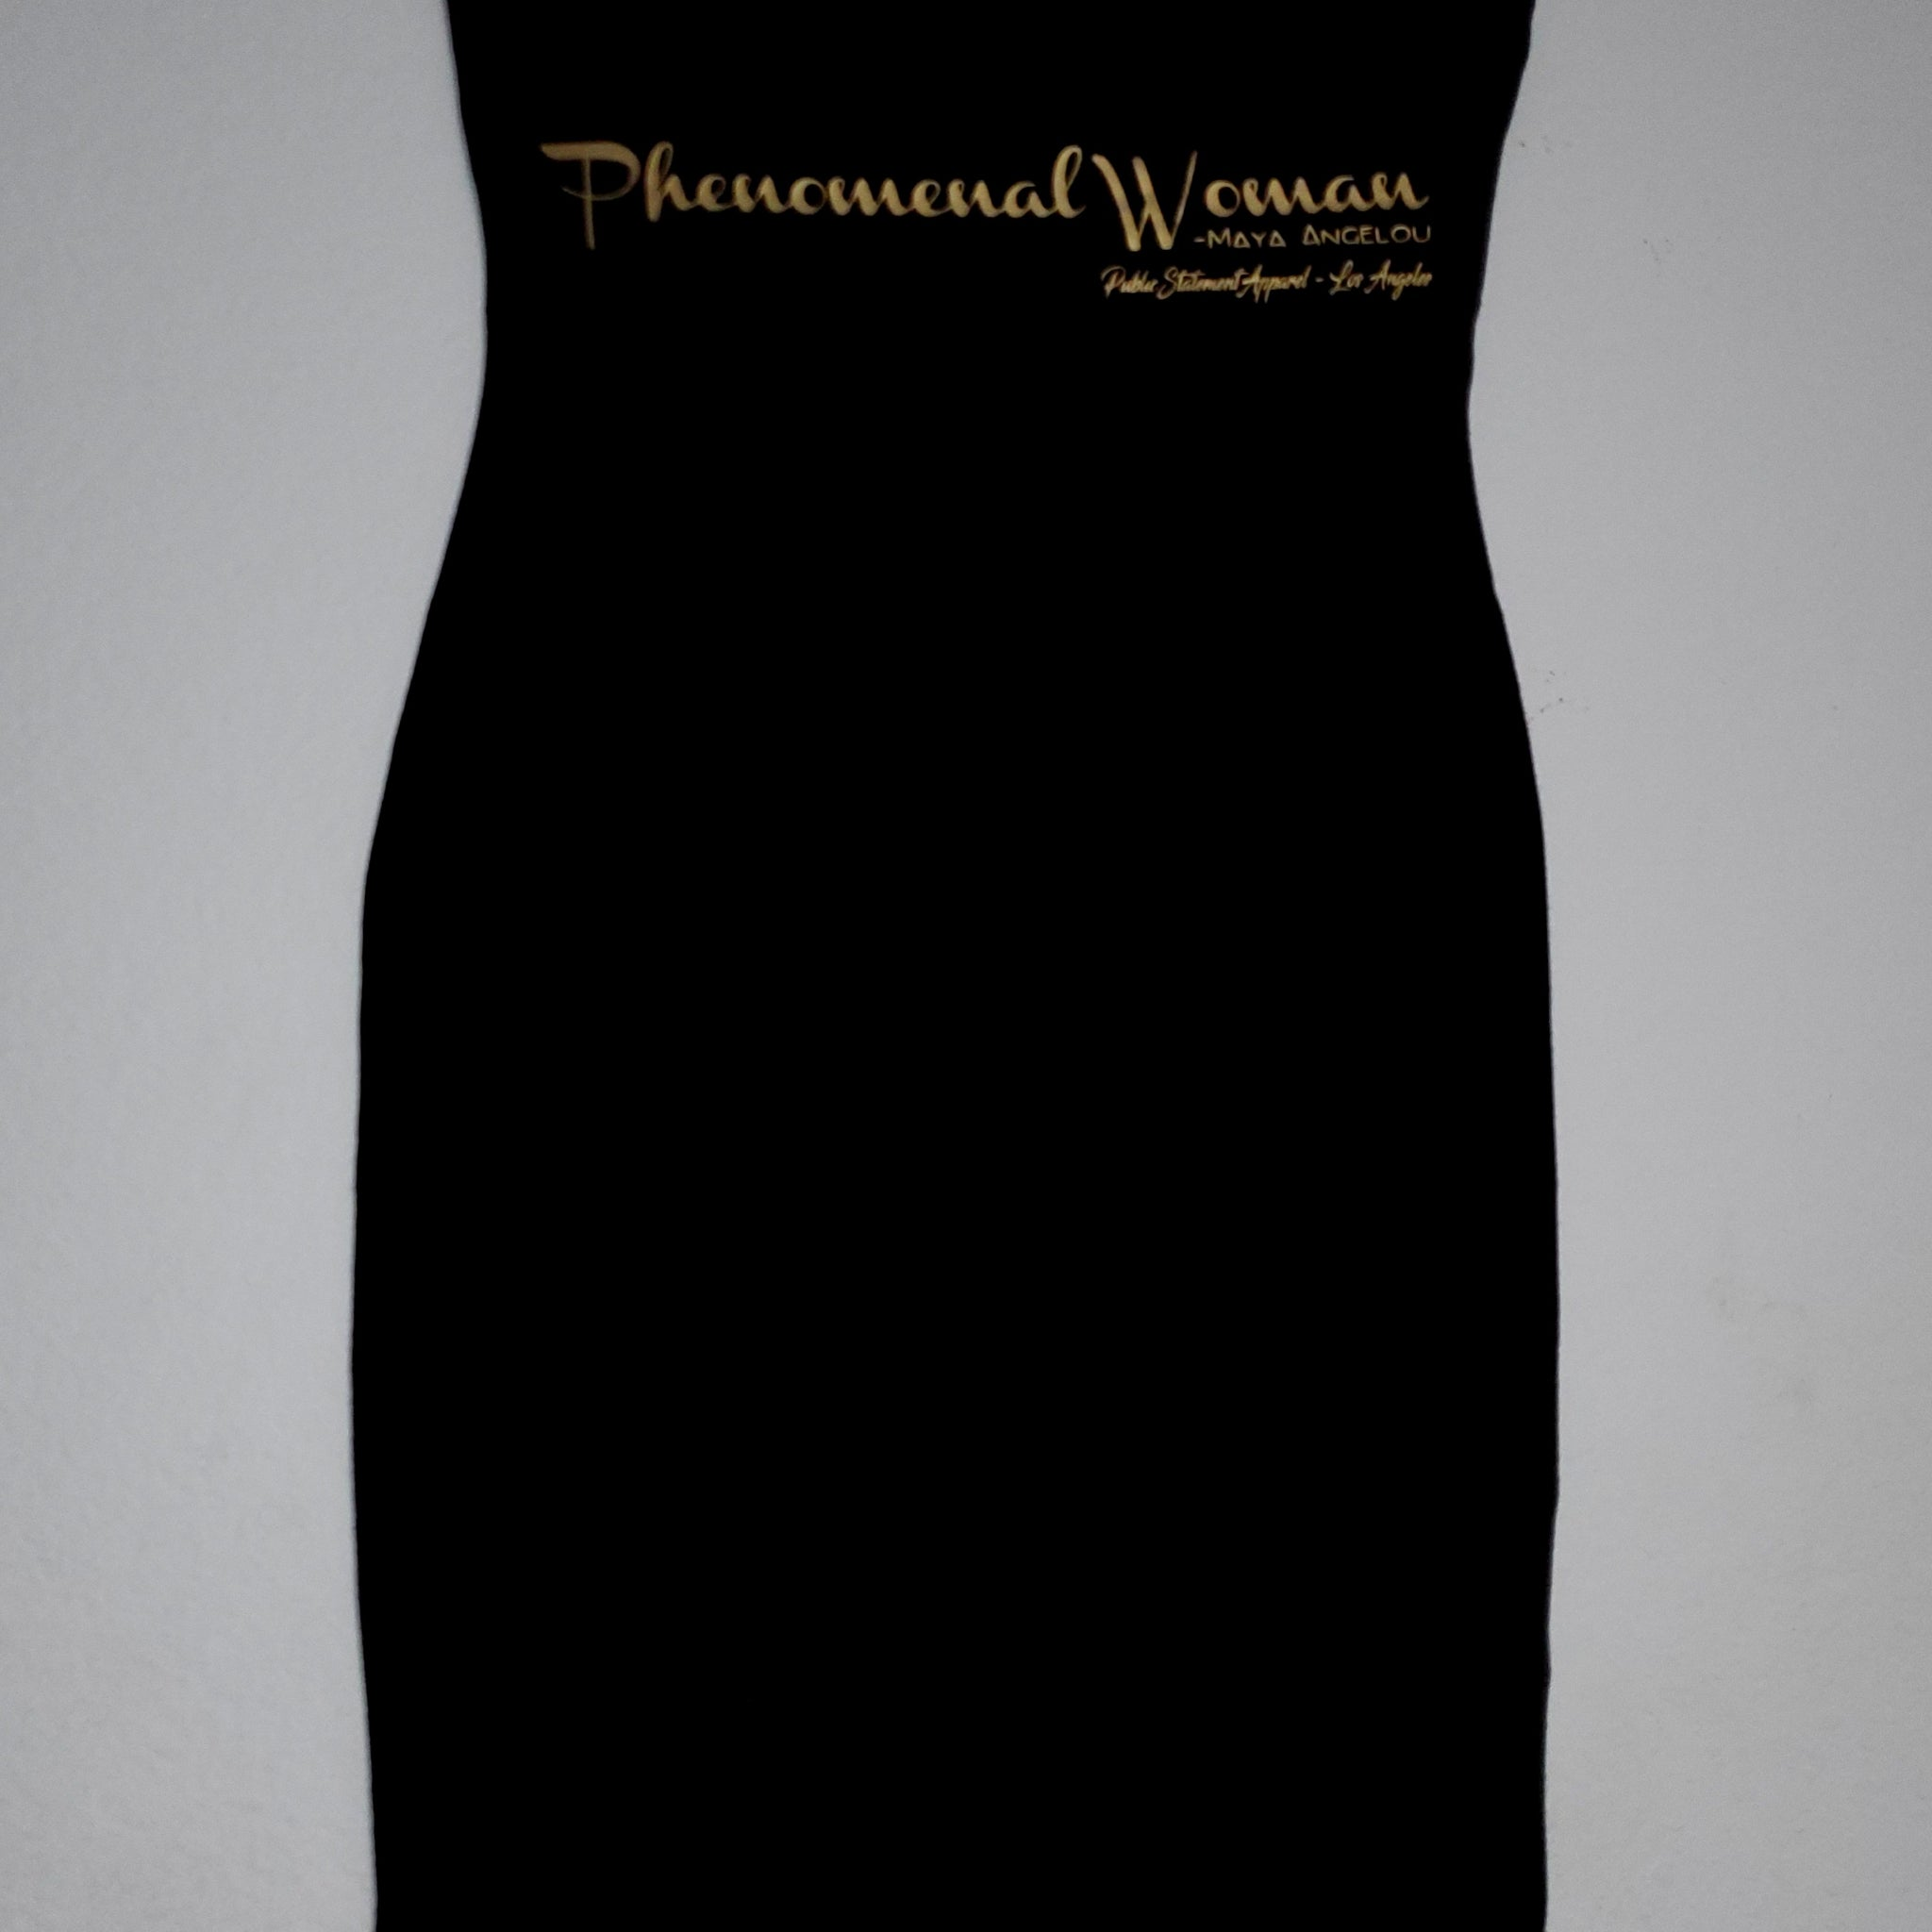 PSA Bandeau Dress - Phenomenal Woman